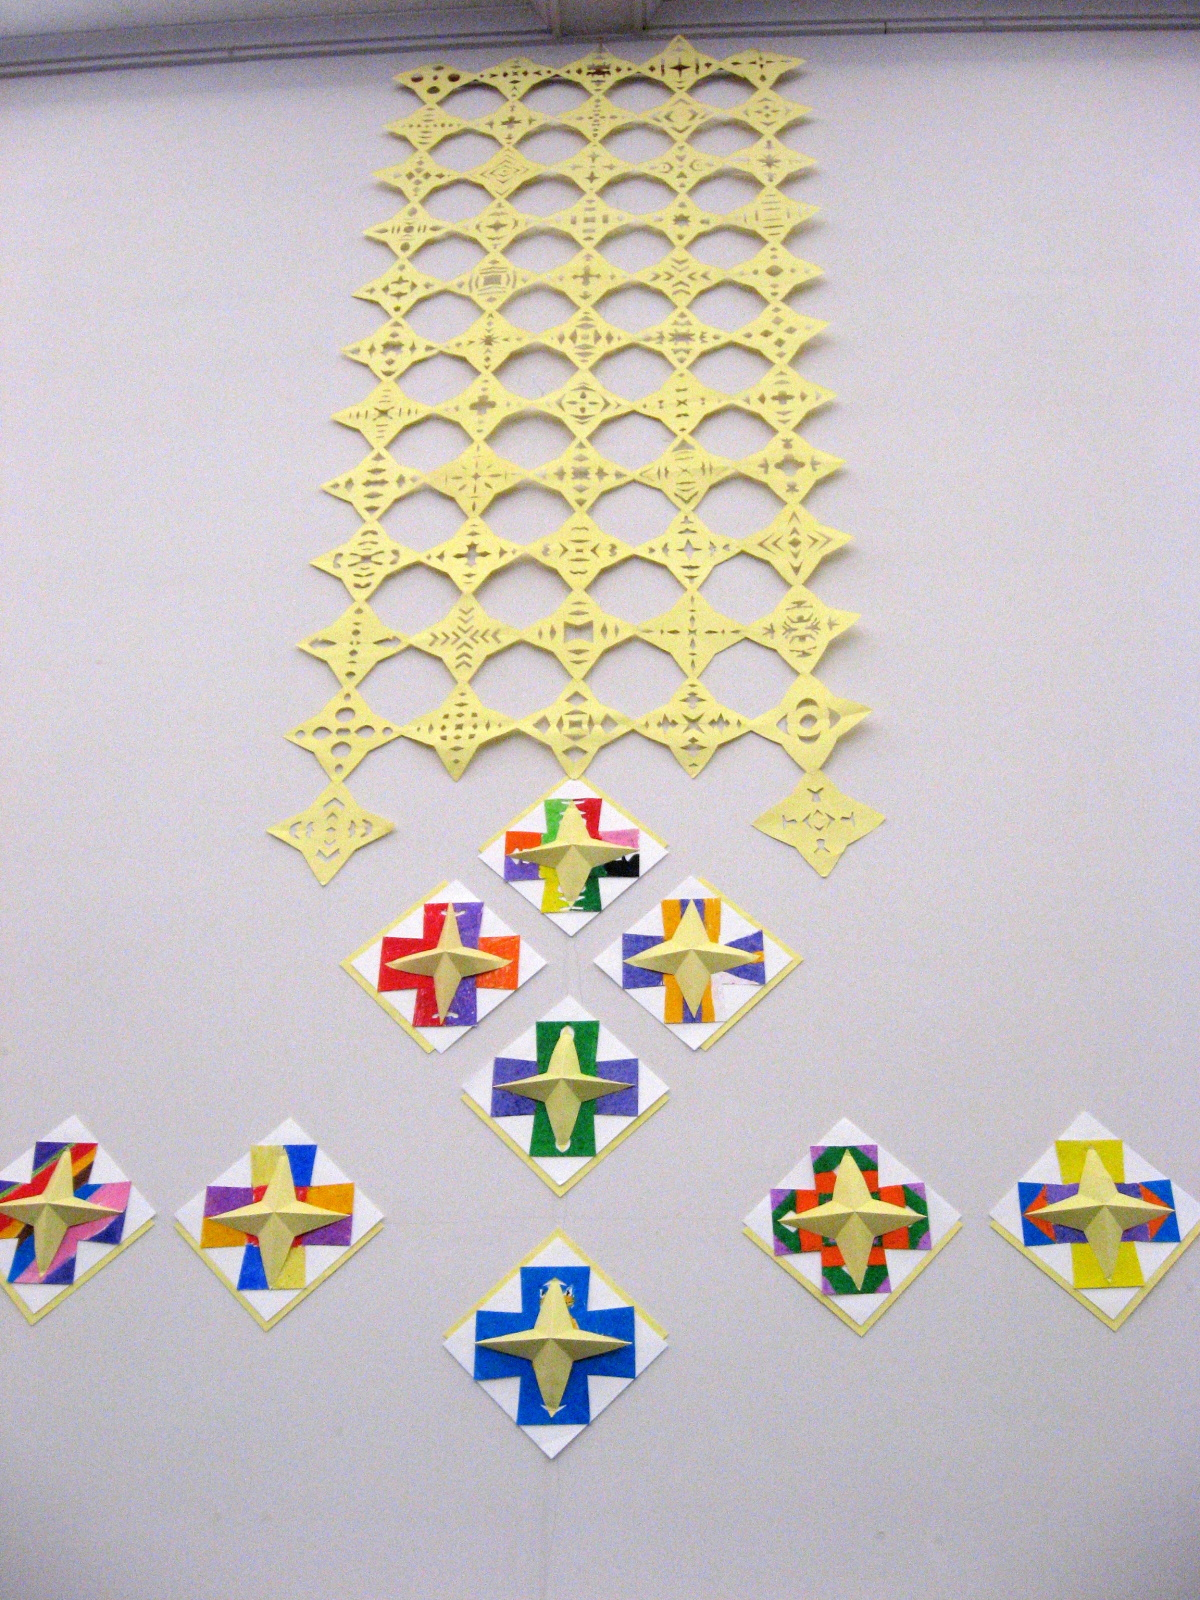 Center Nave wall (1 of 2), cut paper stars and community-made Greek crosses